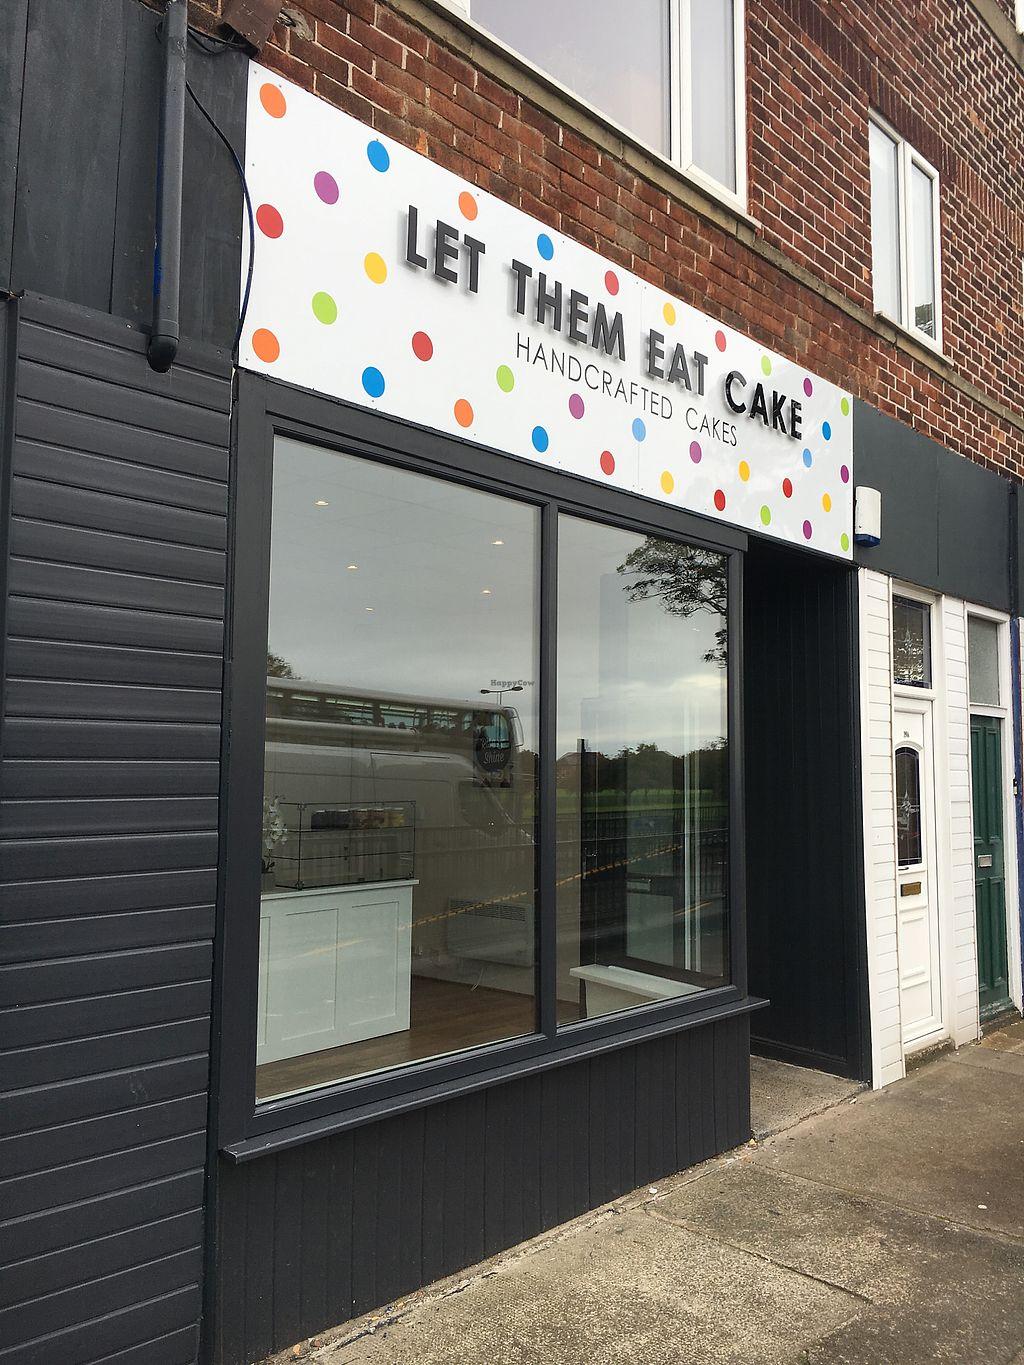 """Photo of CLOSED: Let them Eat Cake  by <a href=""""/members/profile/hack_man"""">hack_man</a> <br/>Outside  <br/> October 4, 2017  - <a href='/contact/abuse/image/101992/311629'>Report</a>"""